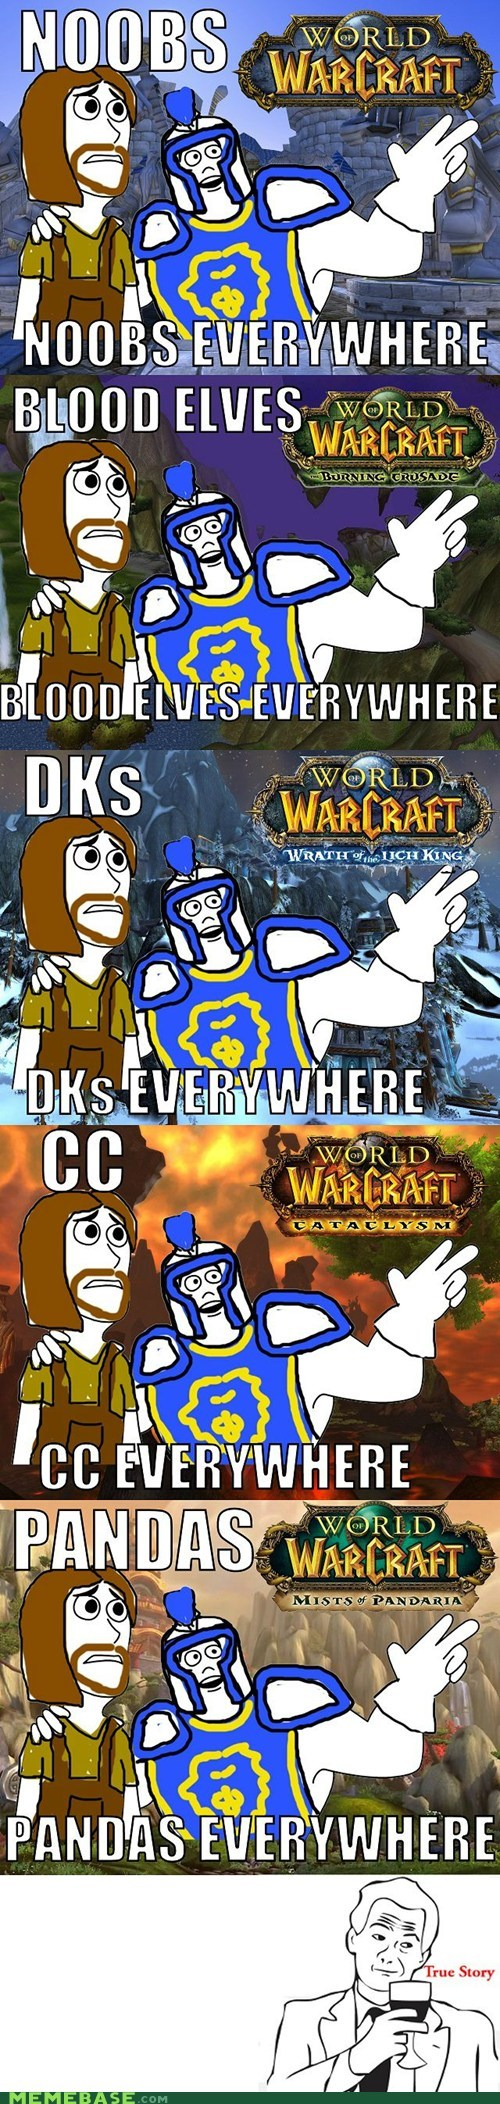 expansions,meme,noobs,PC,true story,video games,world or warcraft